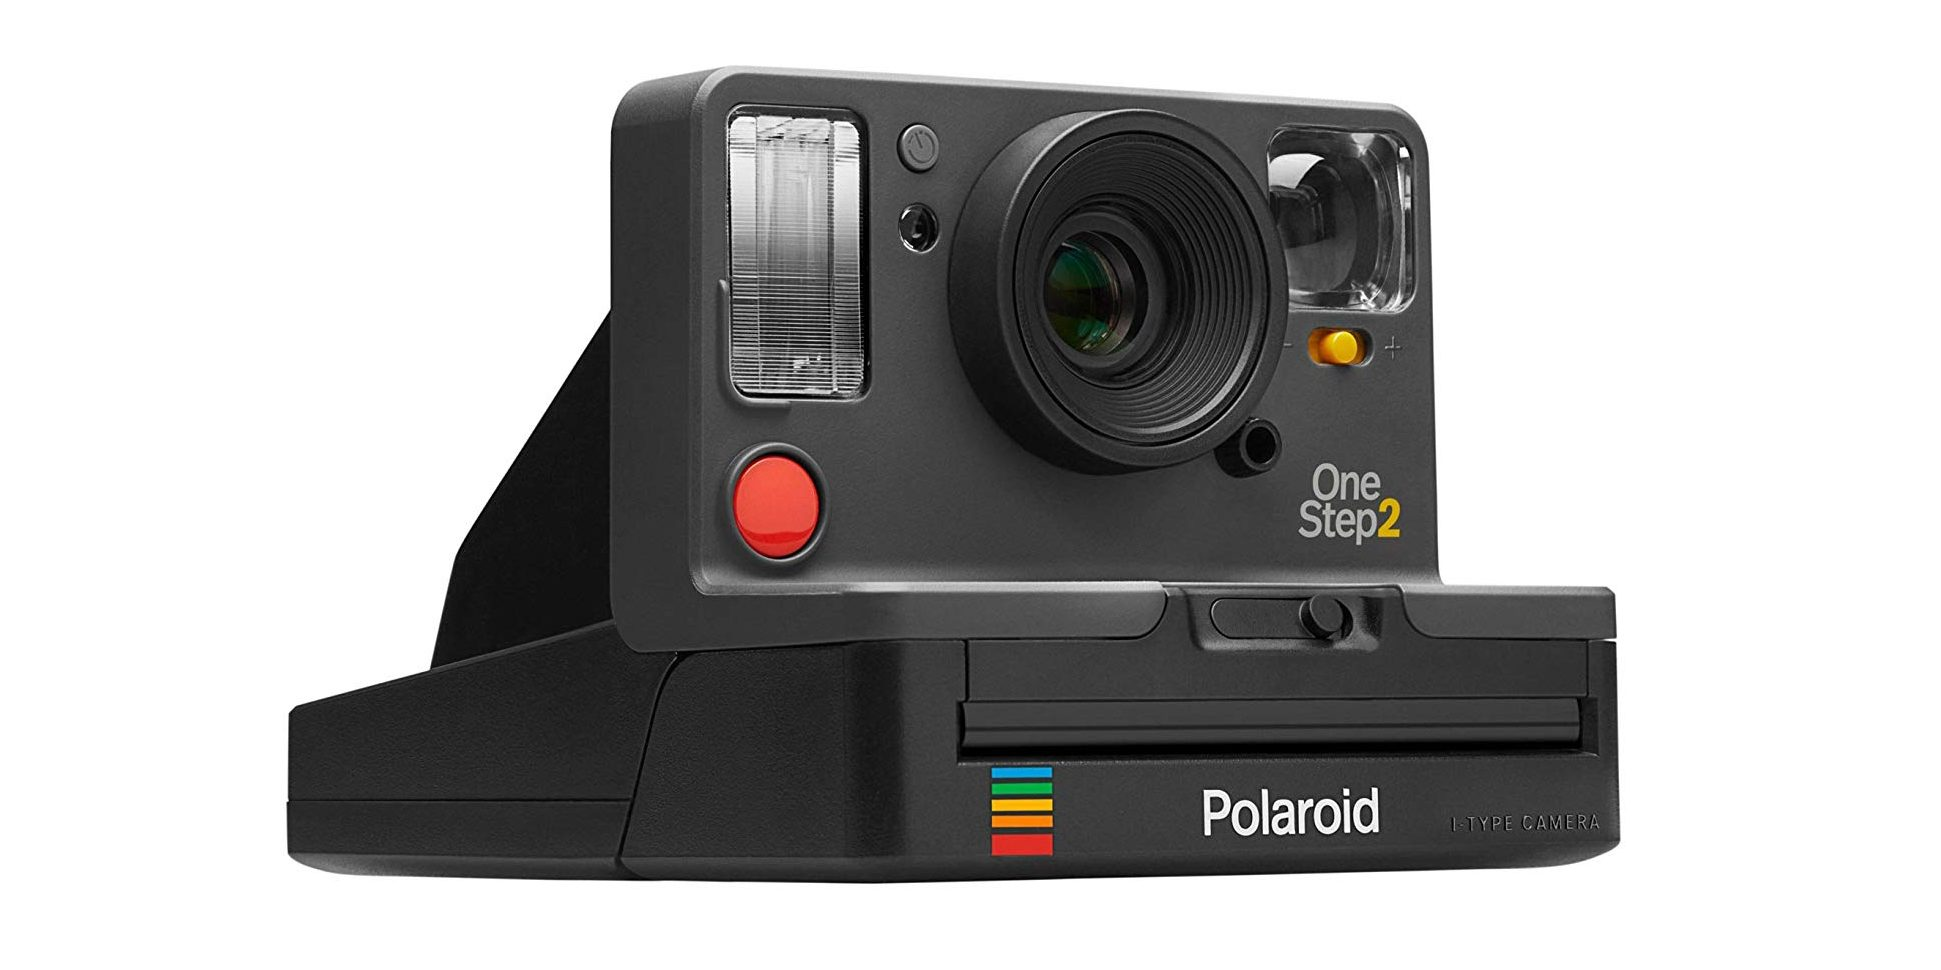 Vintage photography is yours with a Polaroid OneStep 2 camera for $87 (Reg. $100+)